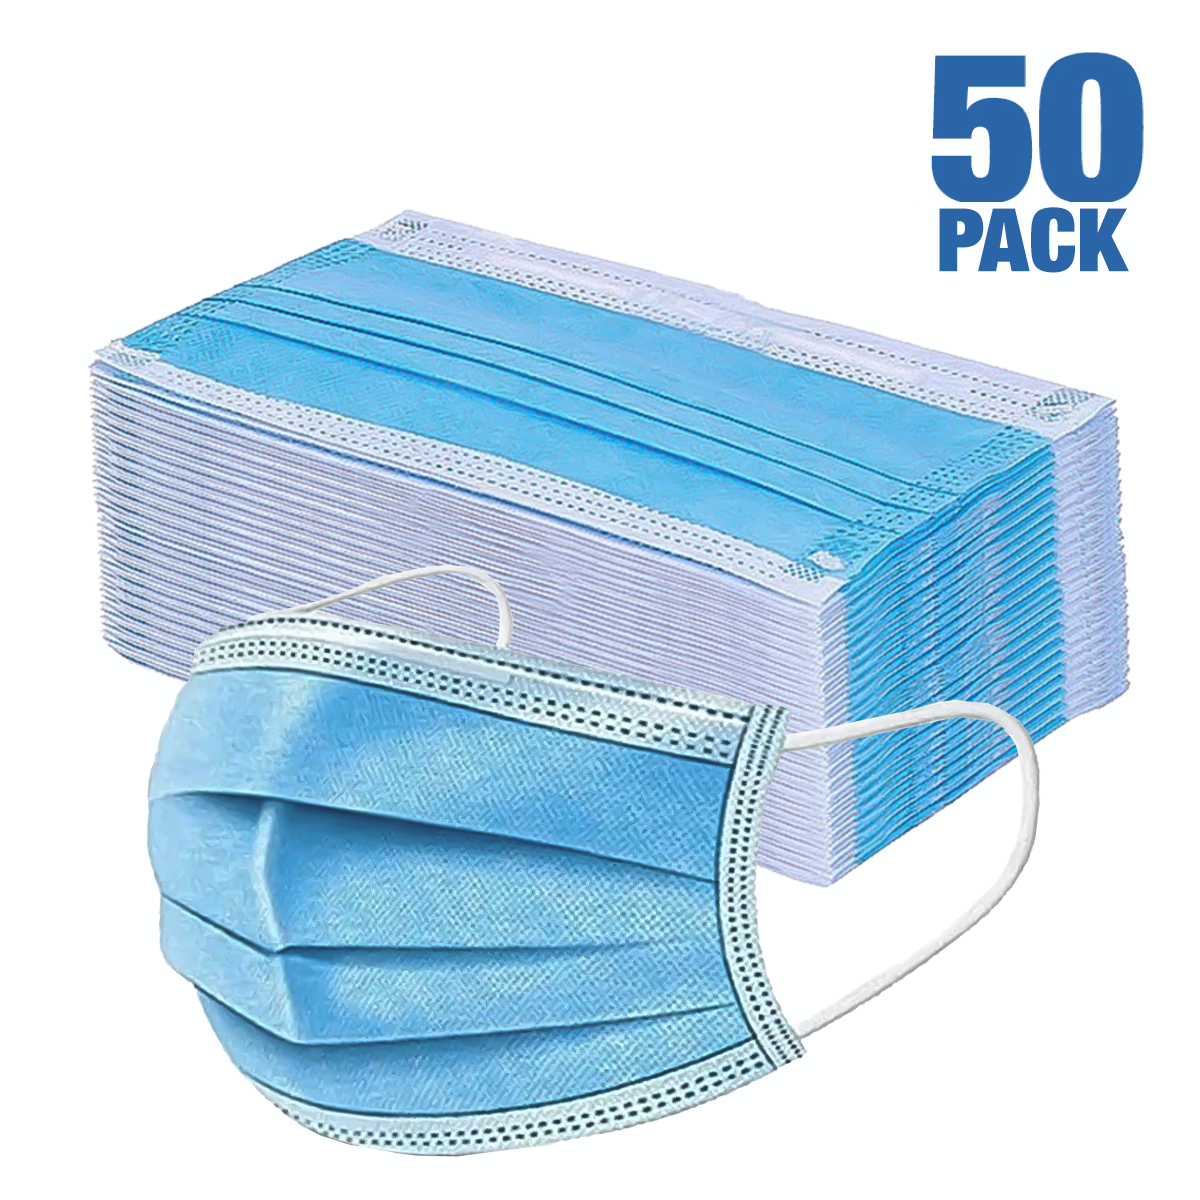 50 PCS Face Mask Dental Disposable 3-Ply Earloop Mouth Cover US 2